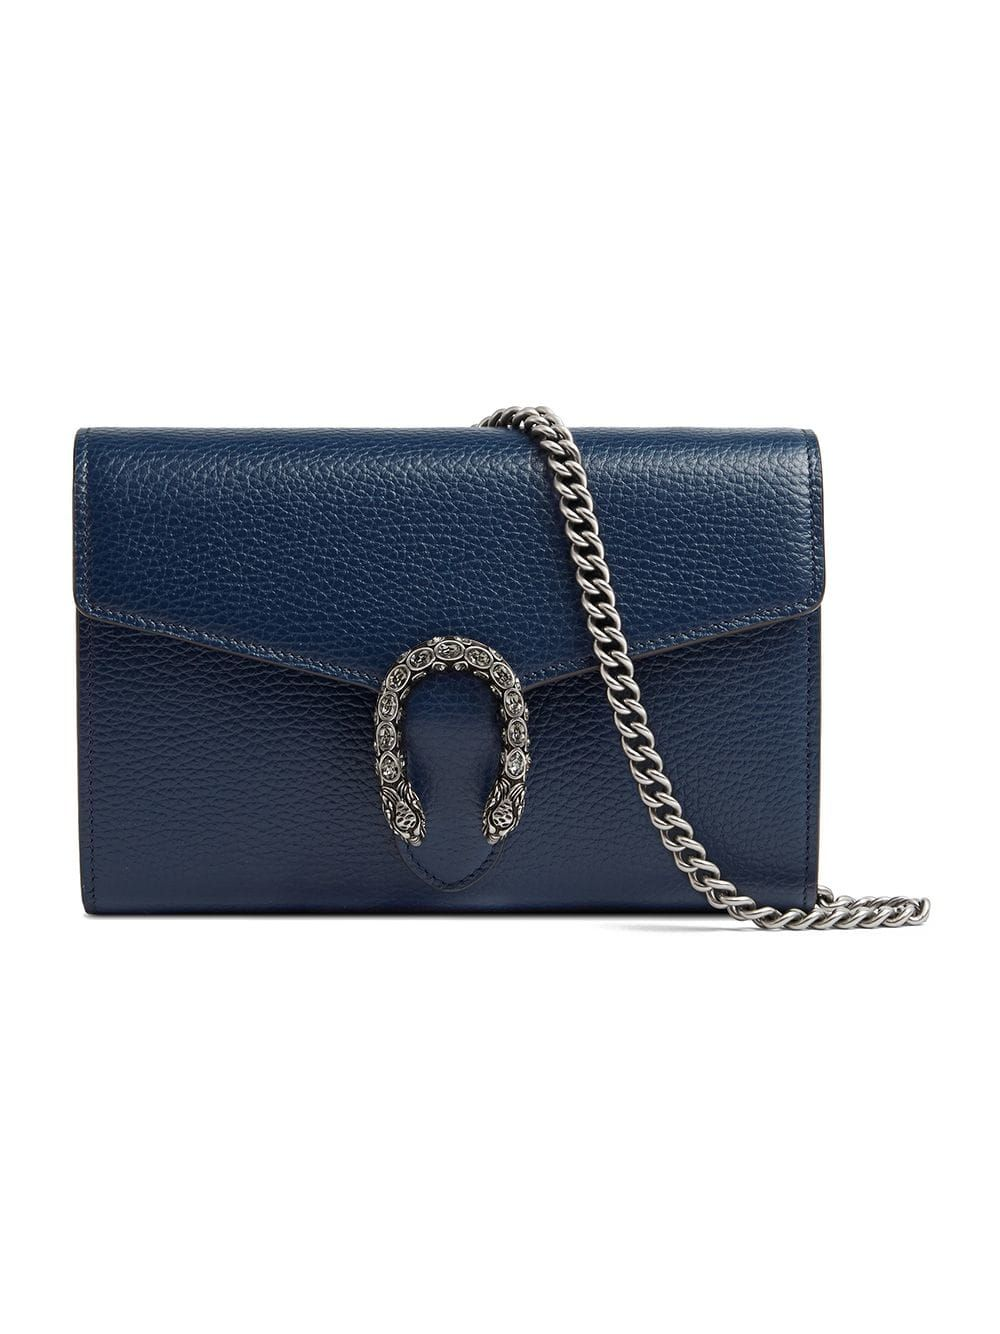 GUCCI GUCCI DIONYSUS LEATHER MINI CHAIN BAG - BLUE.  gucci  bags  stone   crystal  leather  lining  accessories  shoulder bags  wallet 93a00474322c5